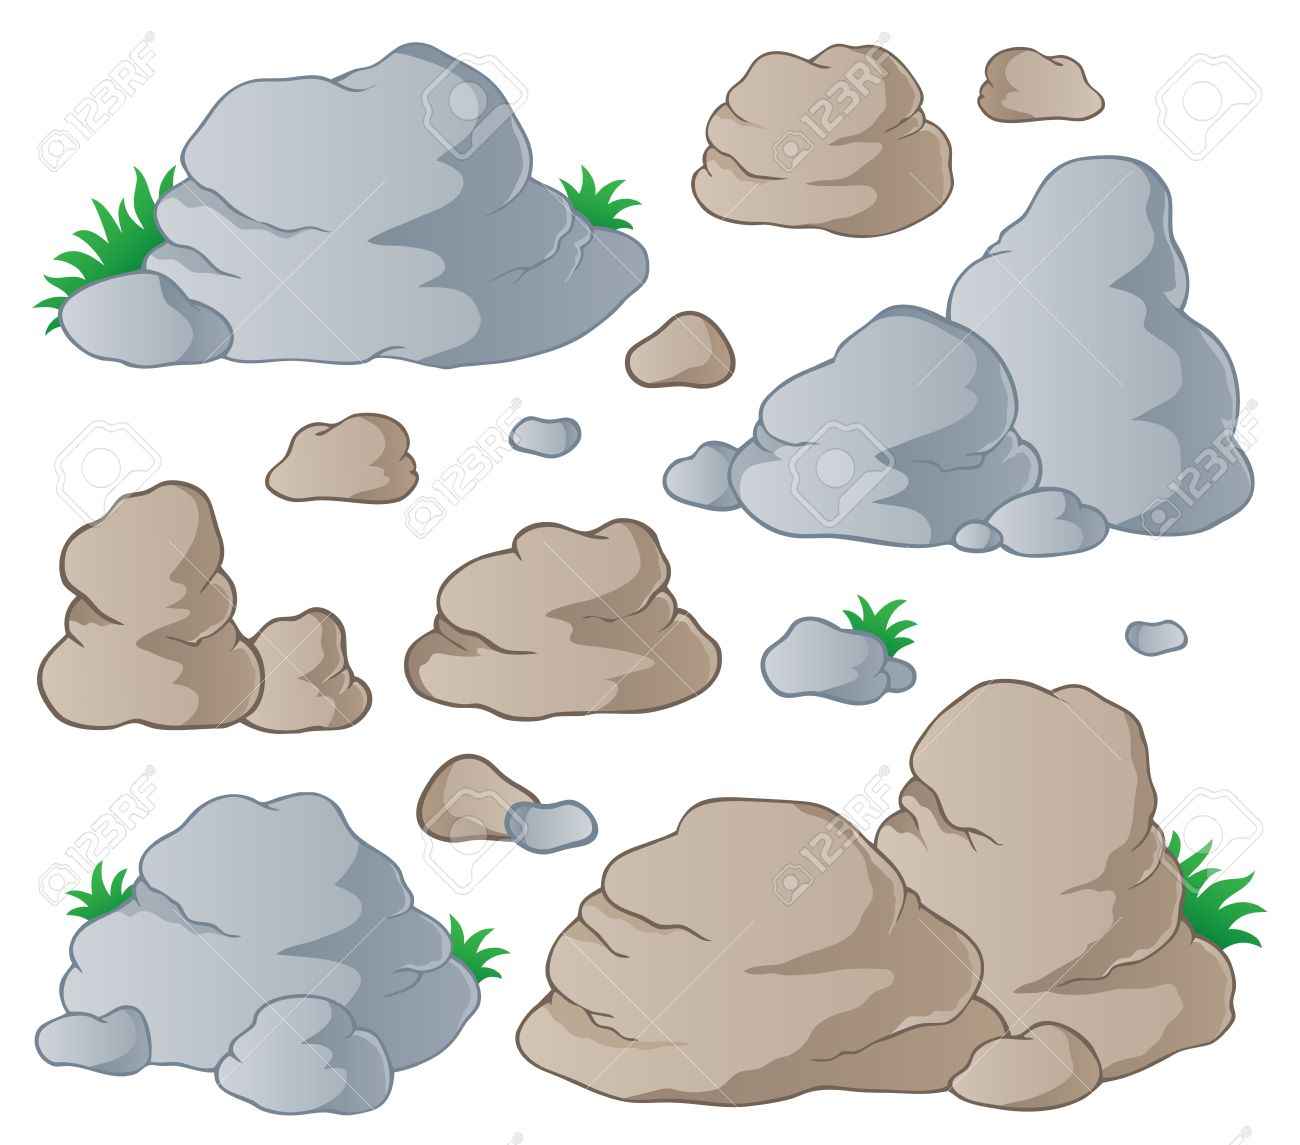 Boulders clipart #6, Download drawings